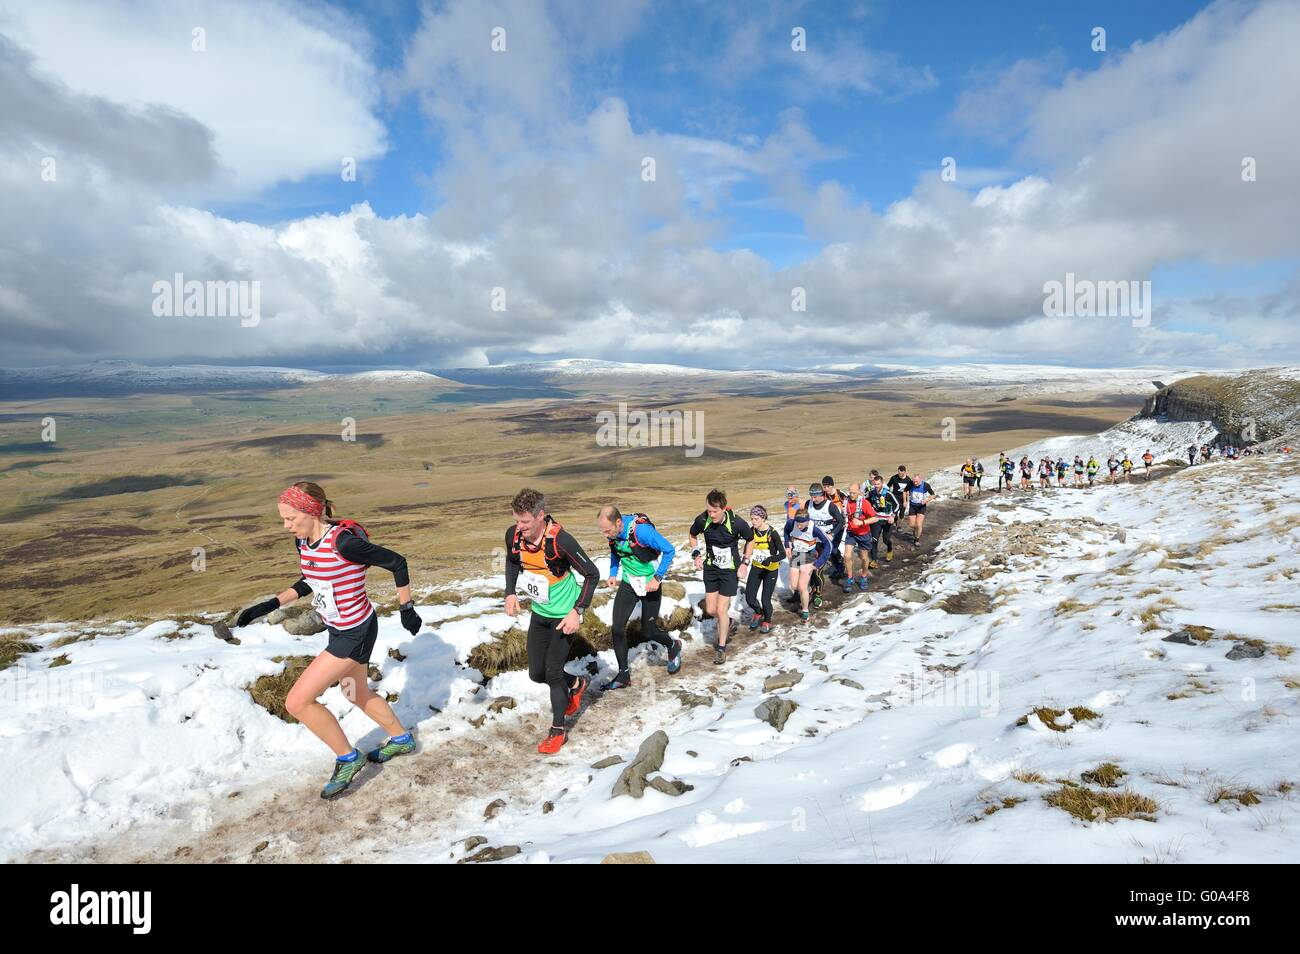 Runners in the Three Peaks Fell race on Pen-y-ghent in the Yorkshire Dales - Stock Image